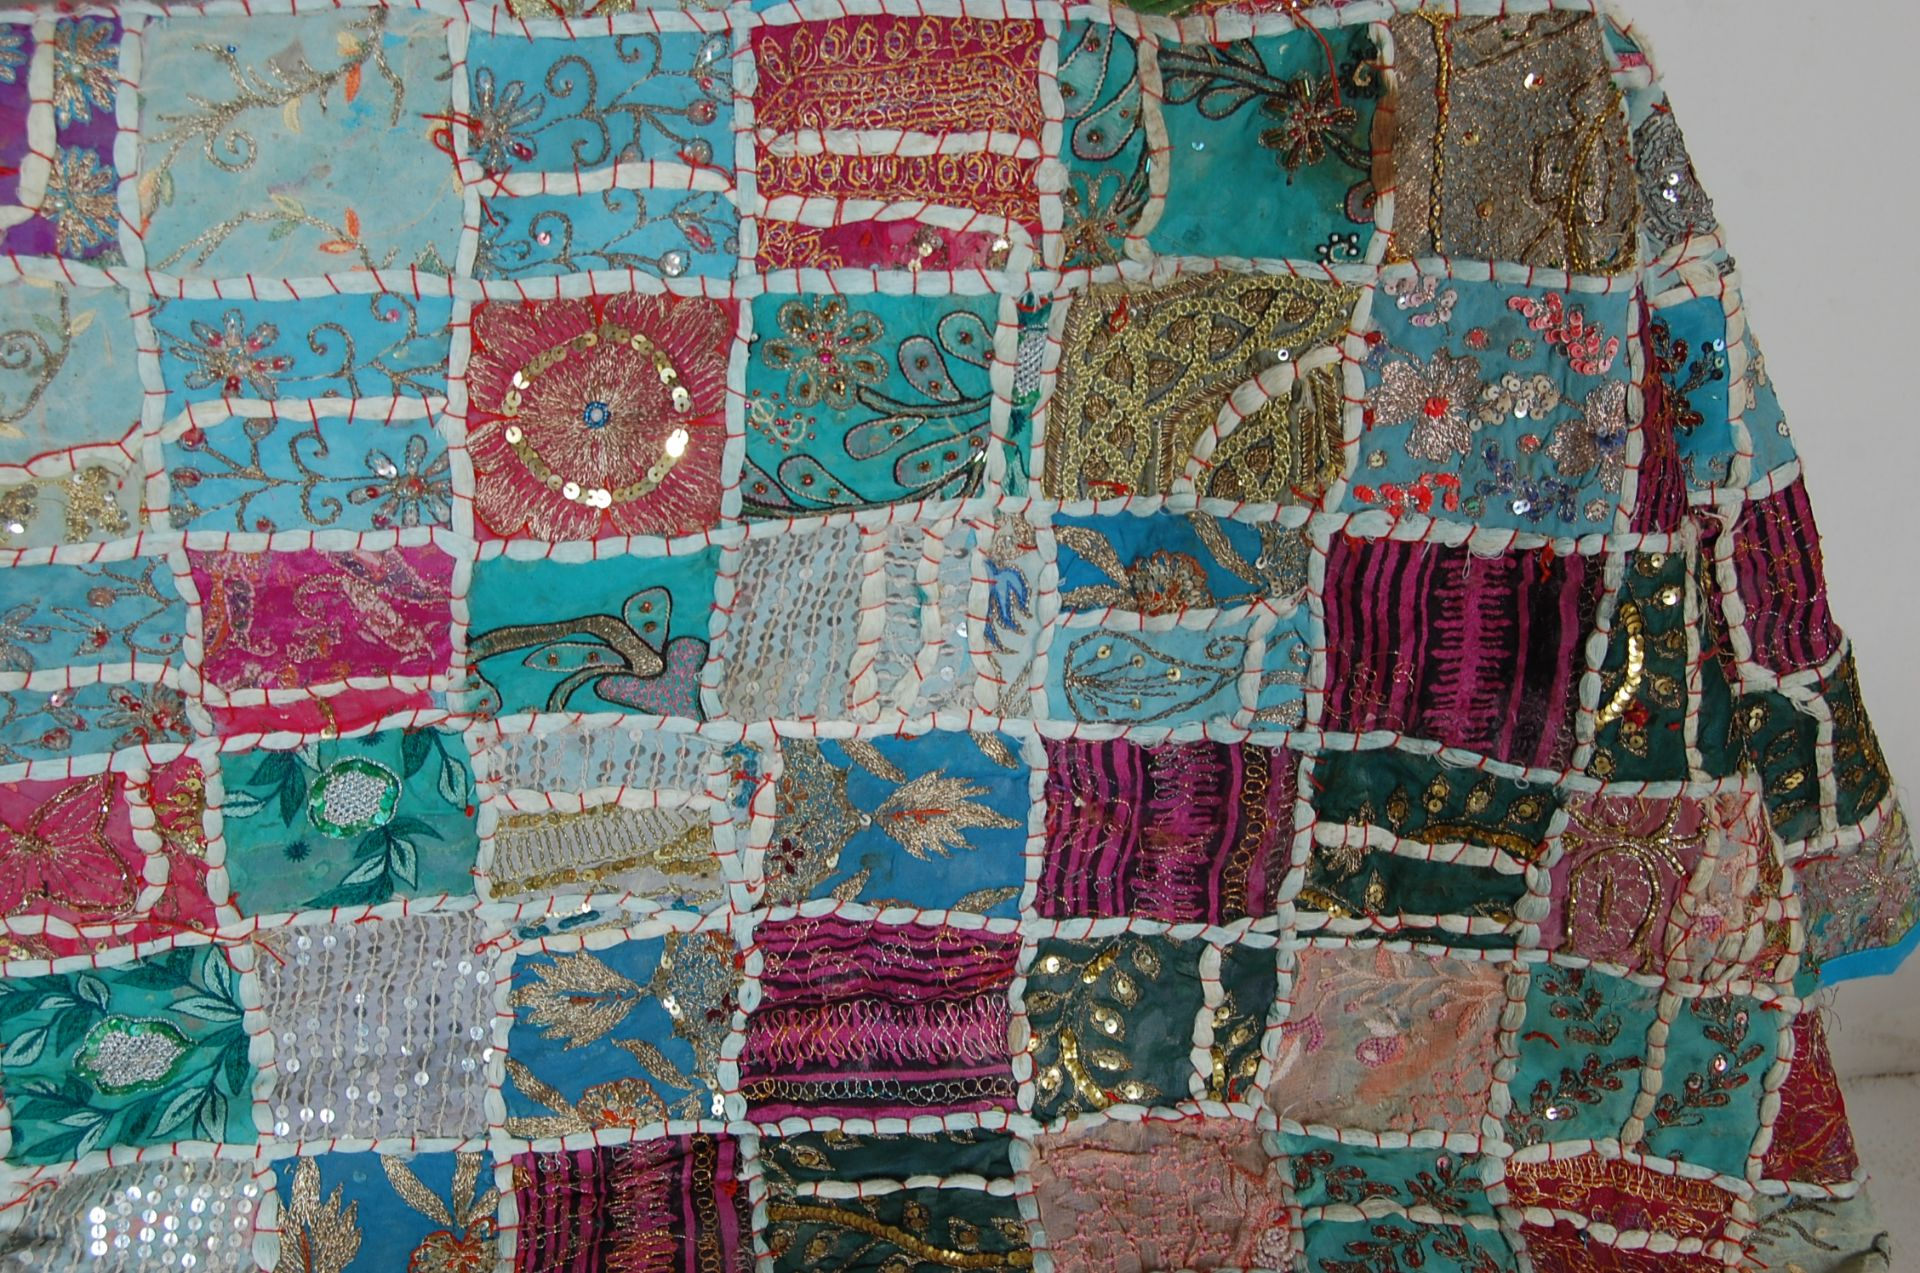 20TH CENTURY ANTIQUE STYLE TRADITIONAL PAKISTANI / RAJASTHANI / INDIAN PATCHWORK QUILT BED THROW - Image 5 of 11